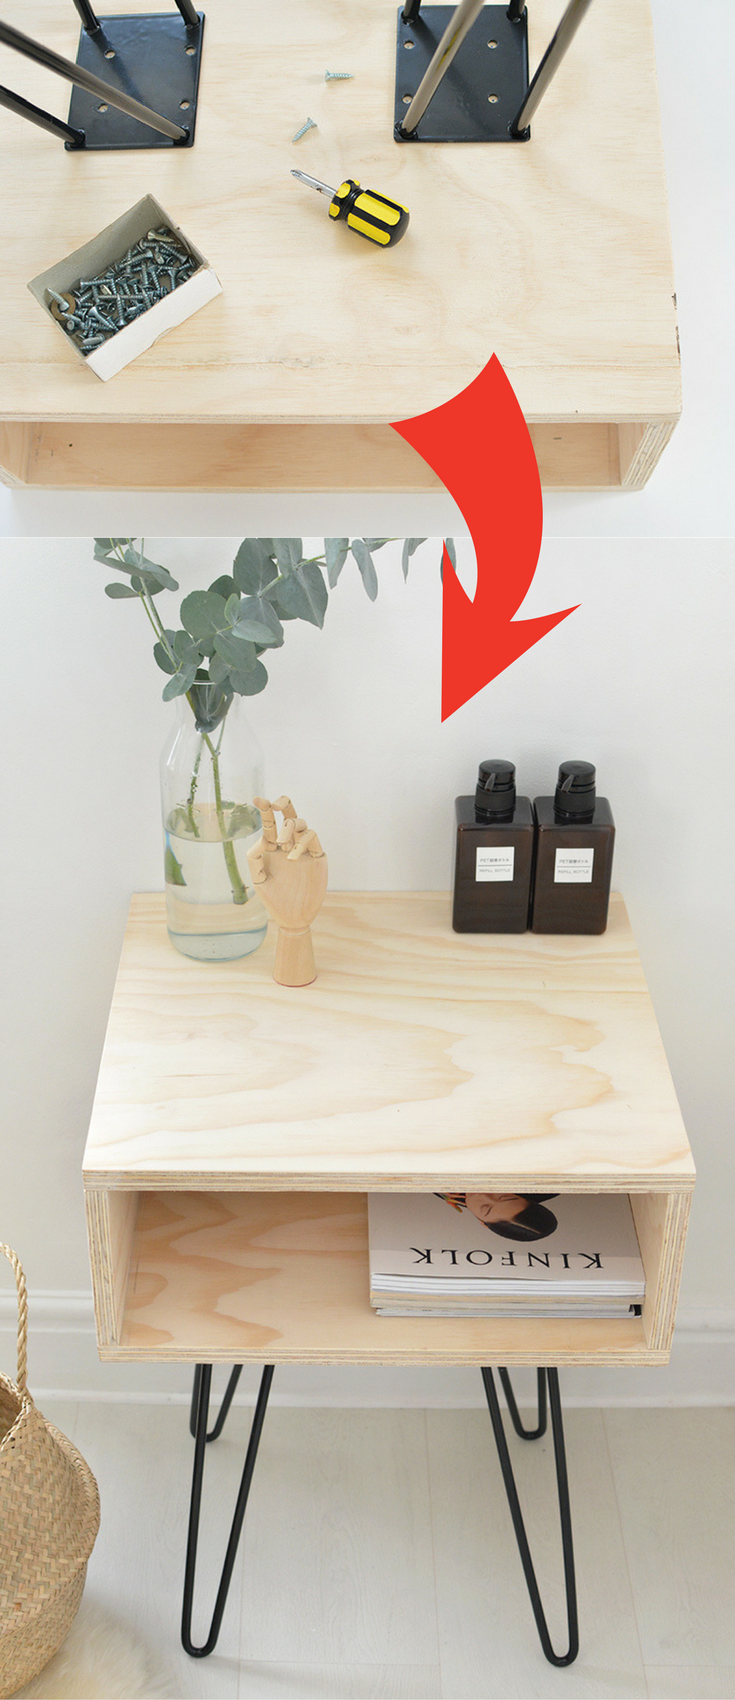 17 Amazing DIY Nightstand Ideas For Your Bedroom is part of Plywood furniture Nightstand - Nightstand decor has become increasingly popular over the last few years  This bedside buddy was once often overlooked as just a boring piece of furniture  This amazing unit is an essential bedroom element that needs